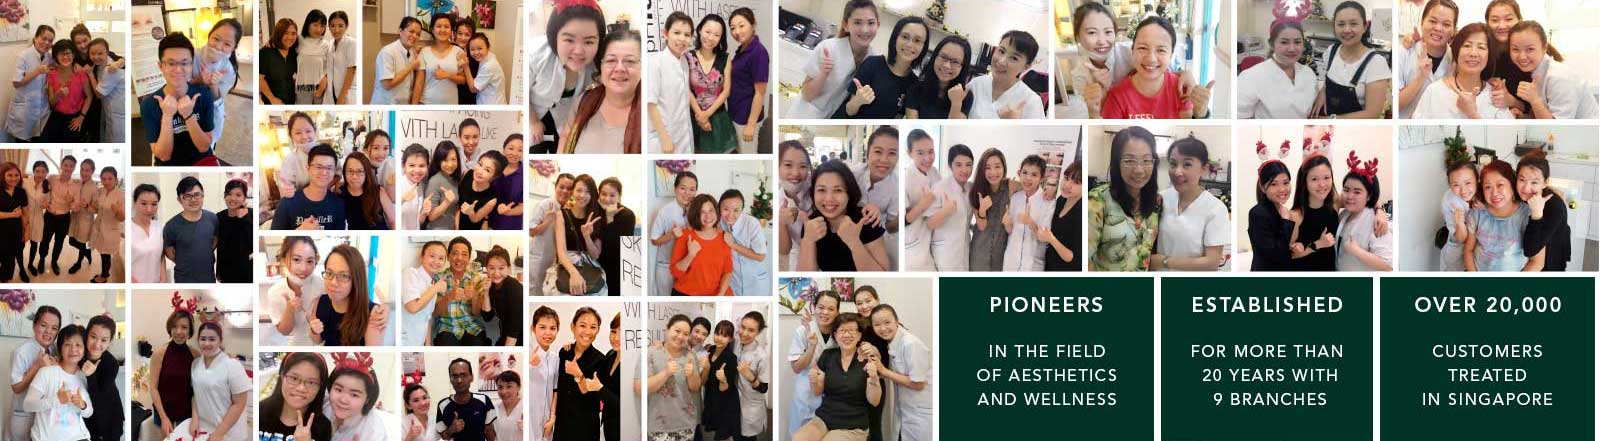 Having served more than 21,257+ satisfied customers and with over 20 years of experience, our results-driven aesthetics group ensures 100% safety and effectiveness on all our procedures. Our 9 branches are located islandwide in Singapore Orchard, Dhoby Ghaut, Bishan, Tampines & Clementi and in Western Australia.